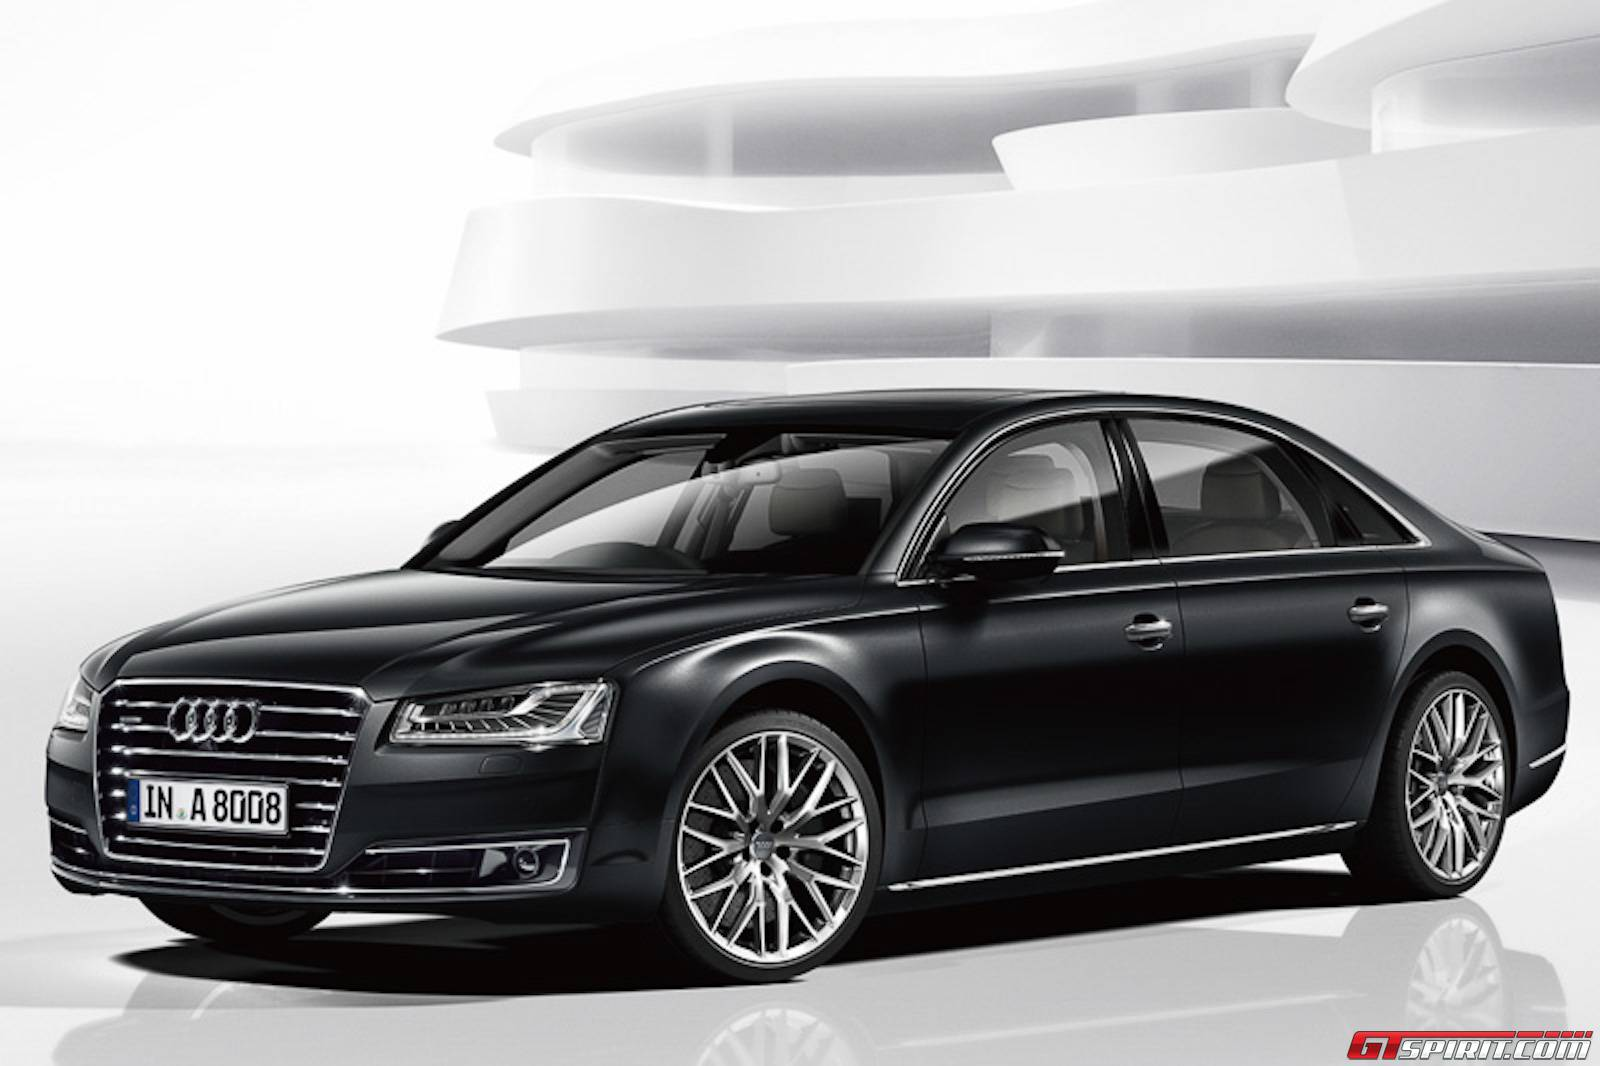 Two new audi a8 editions launched in japan gtspirit audi a8 l chauffer black sciox Image collections